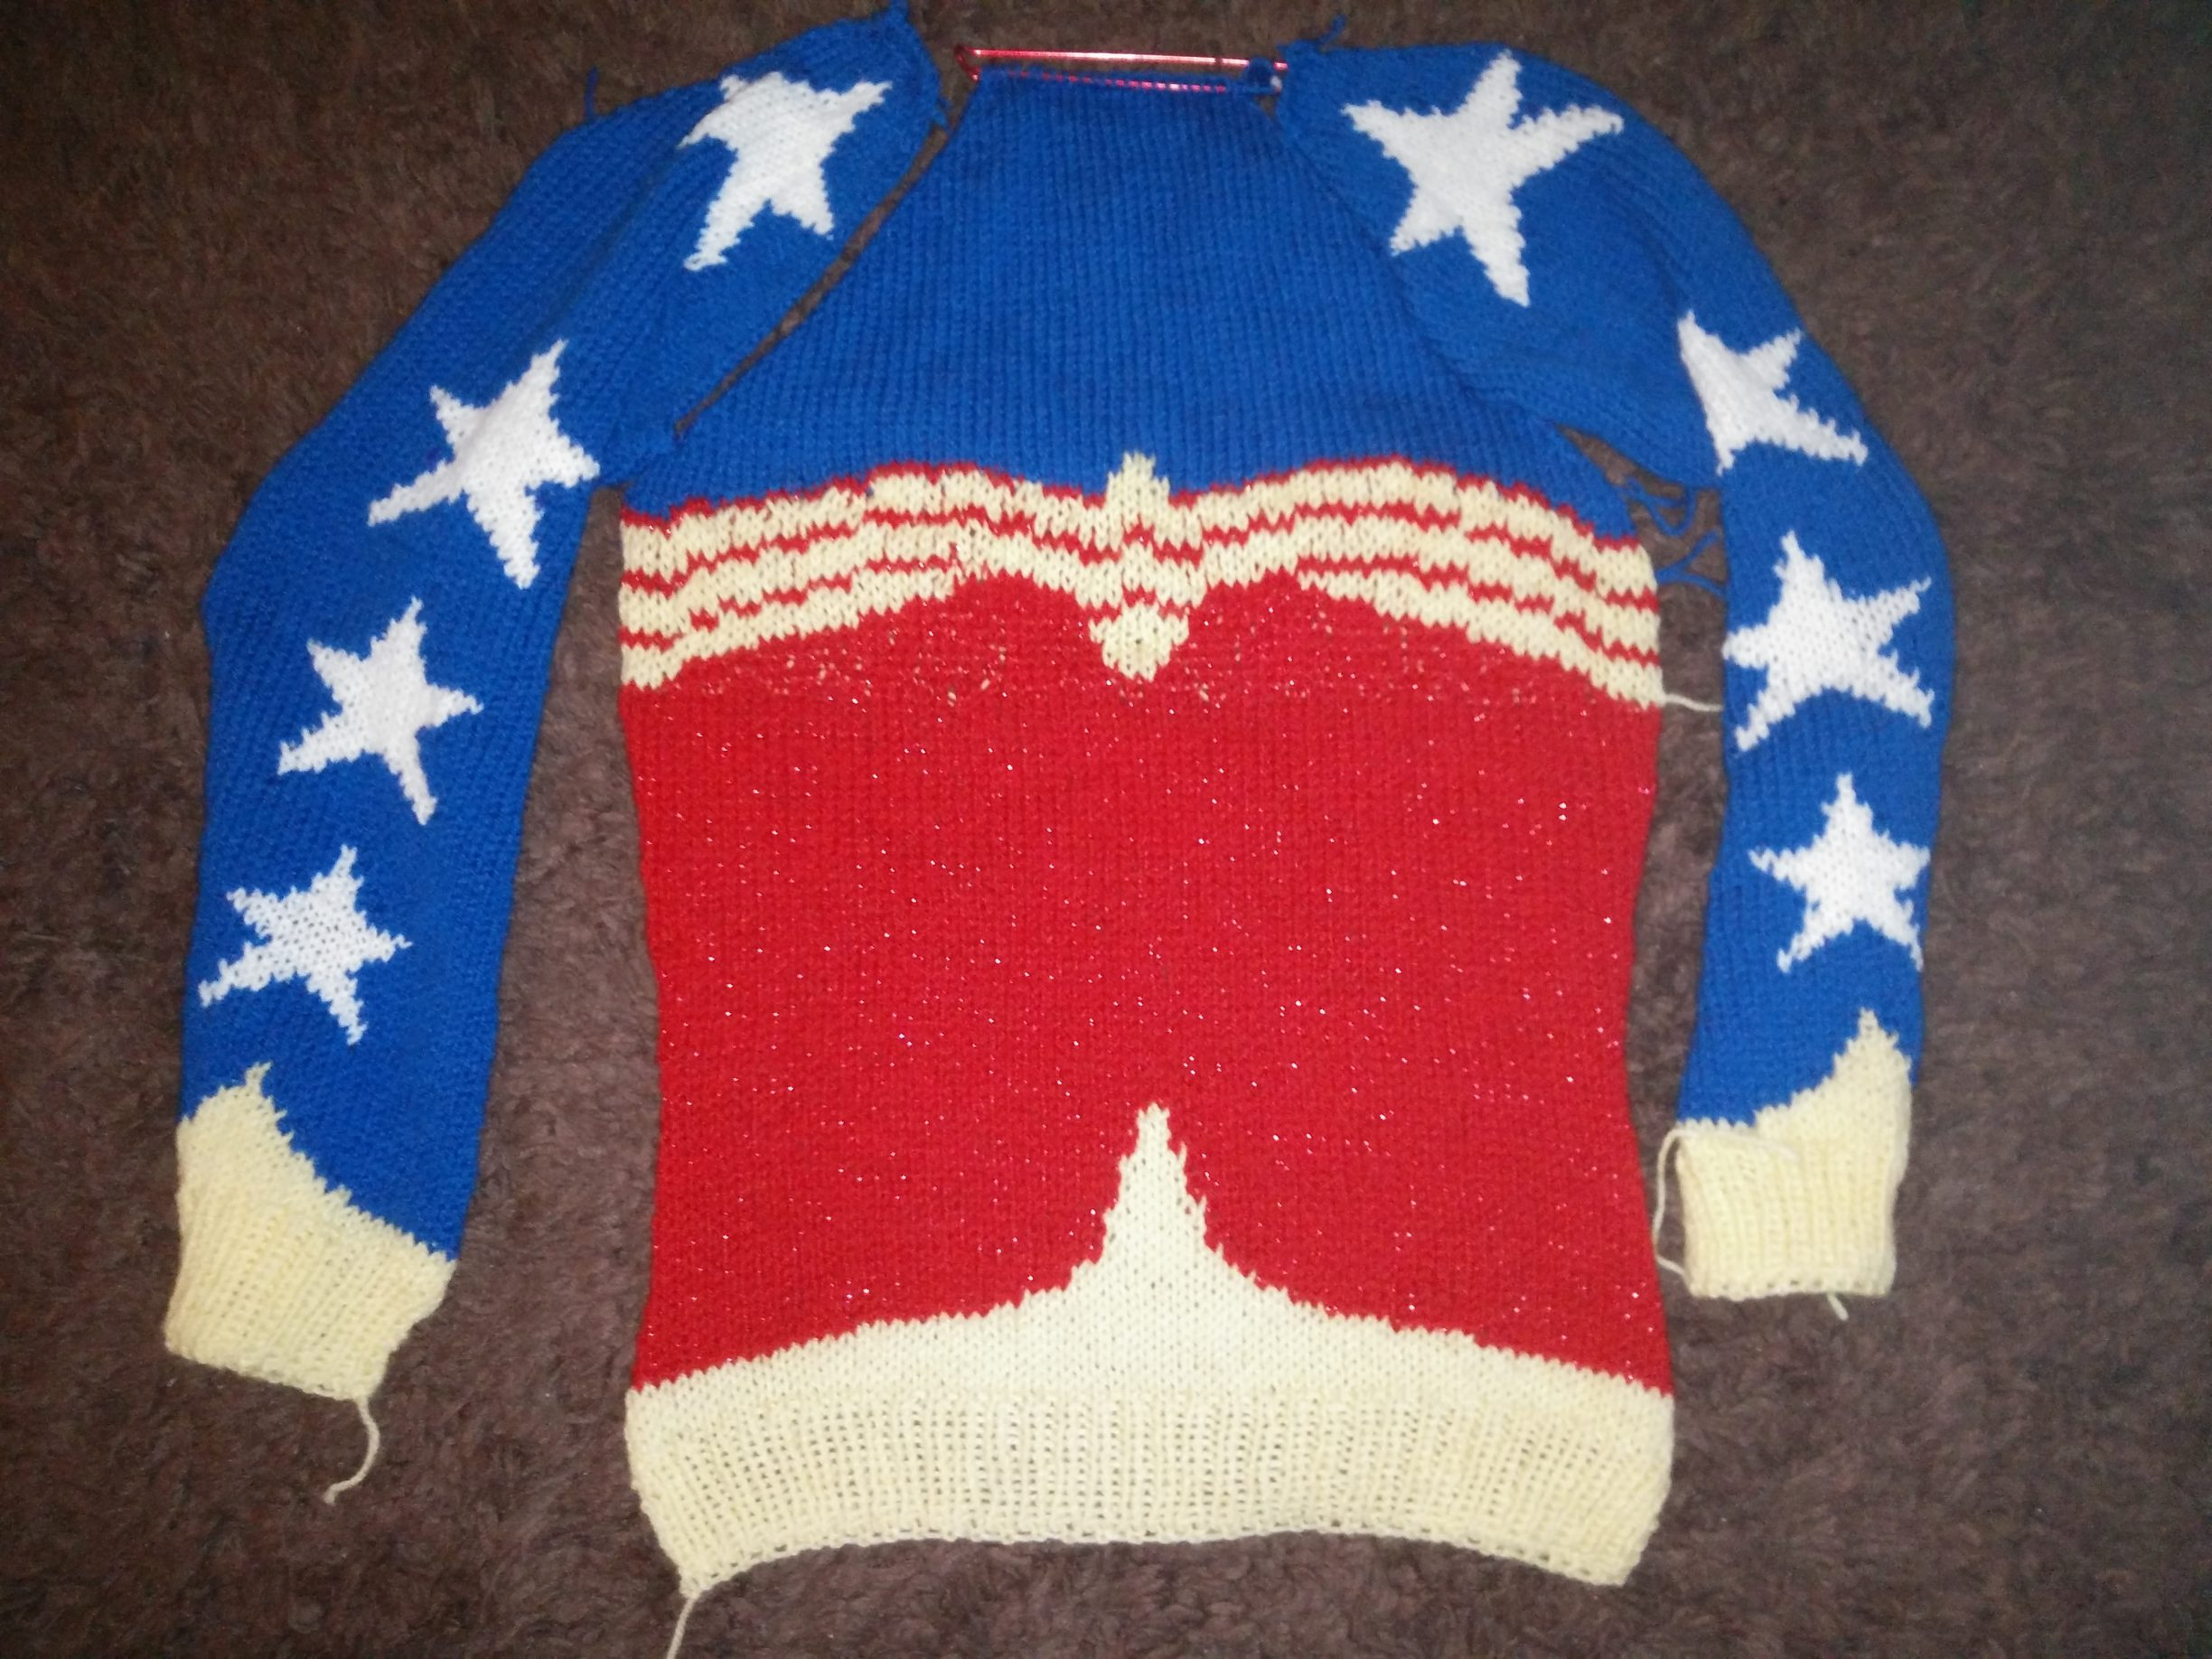 Wonder Woman Jumper Knitting Project